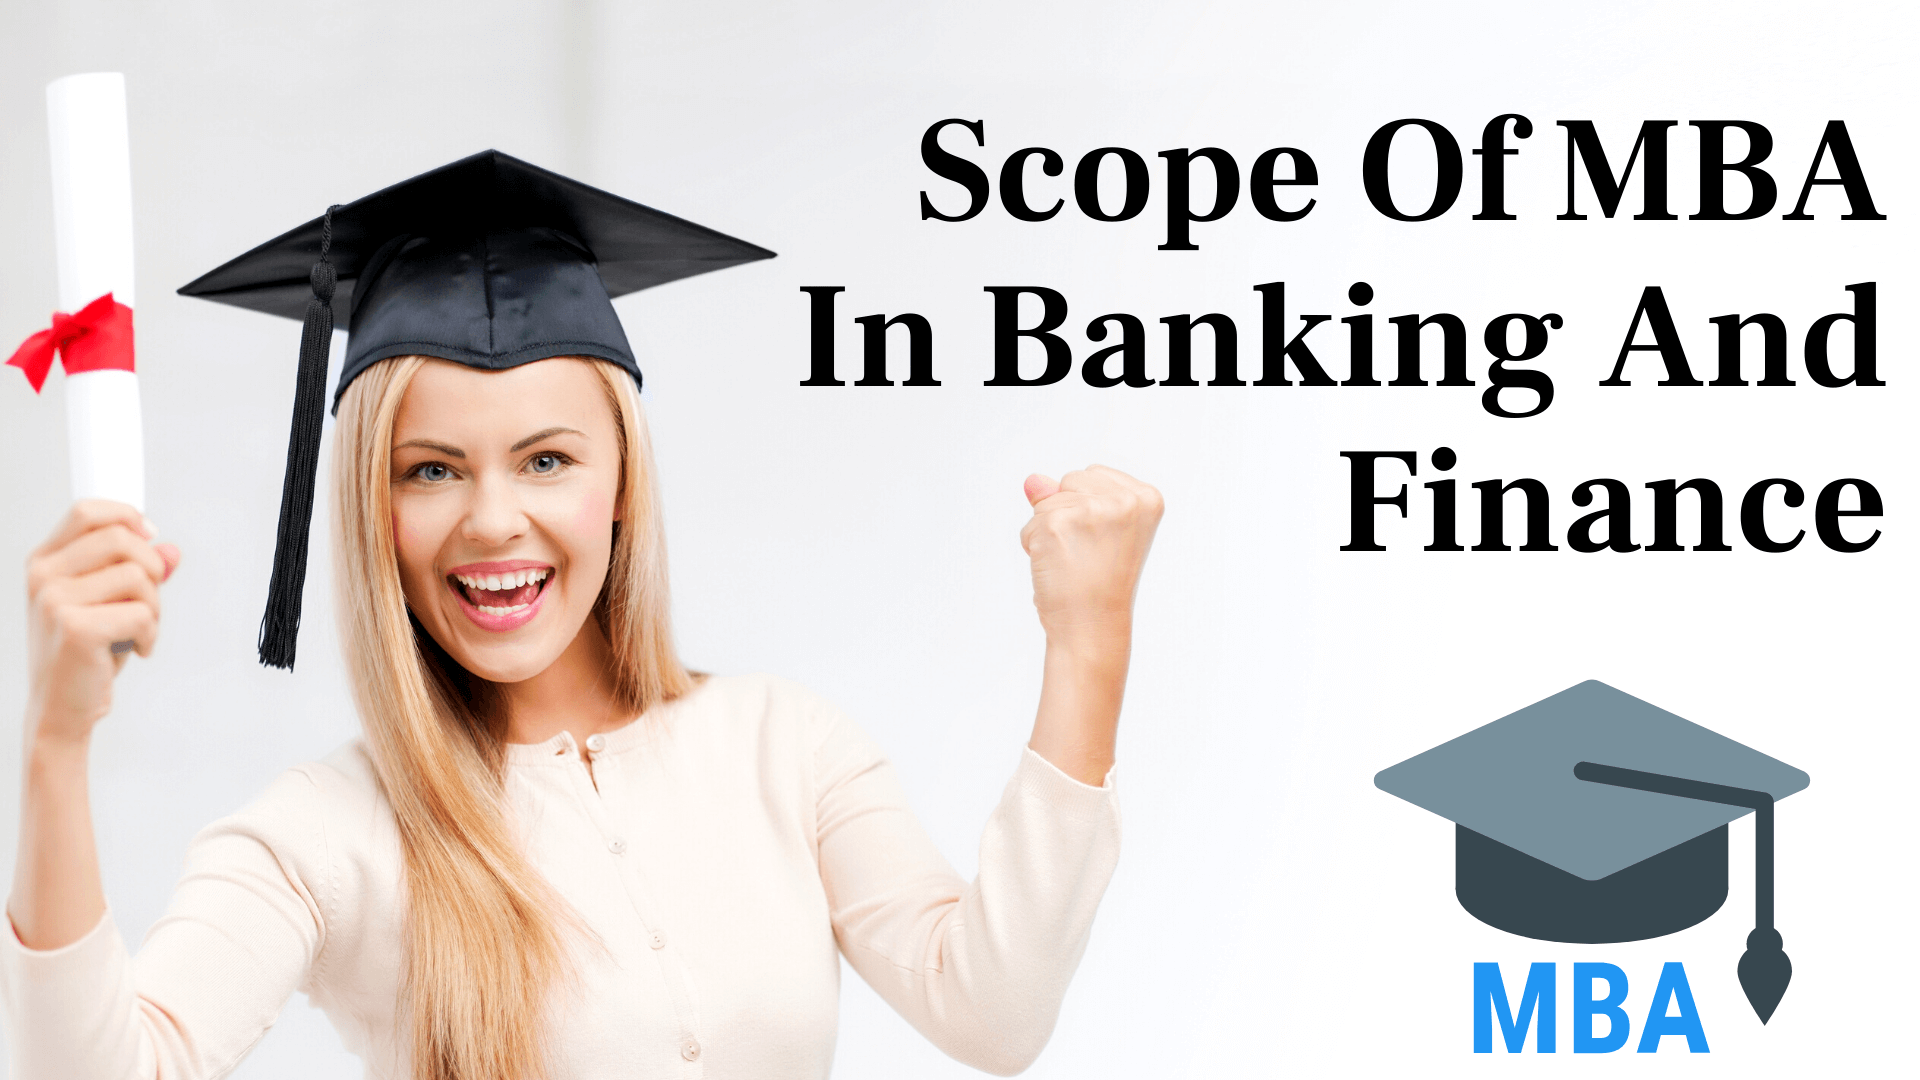 Scope Of MBA In Banking And Finance